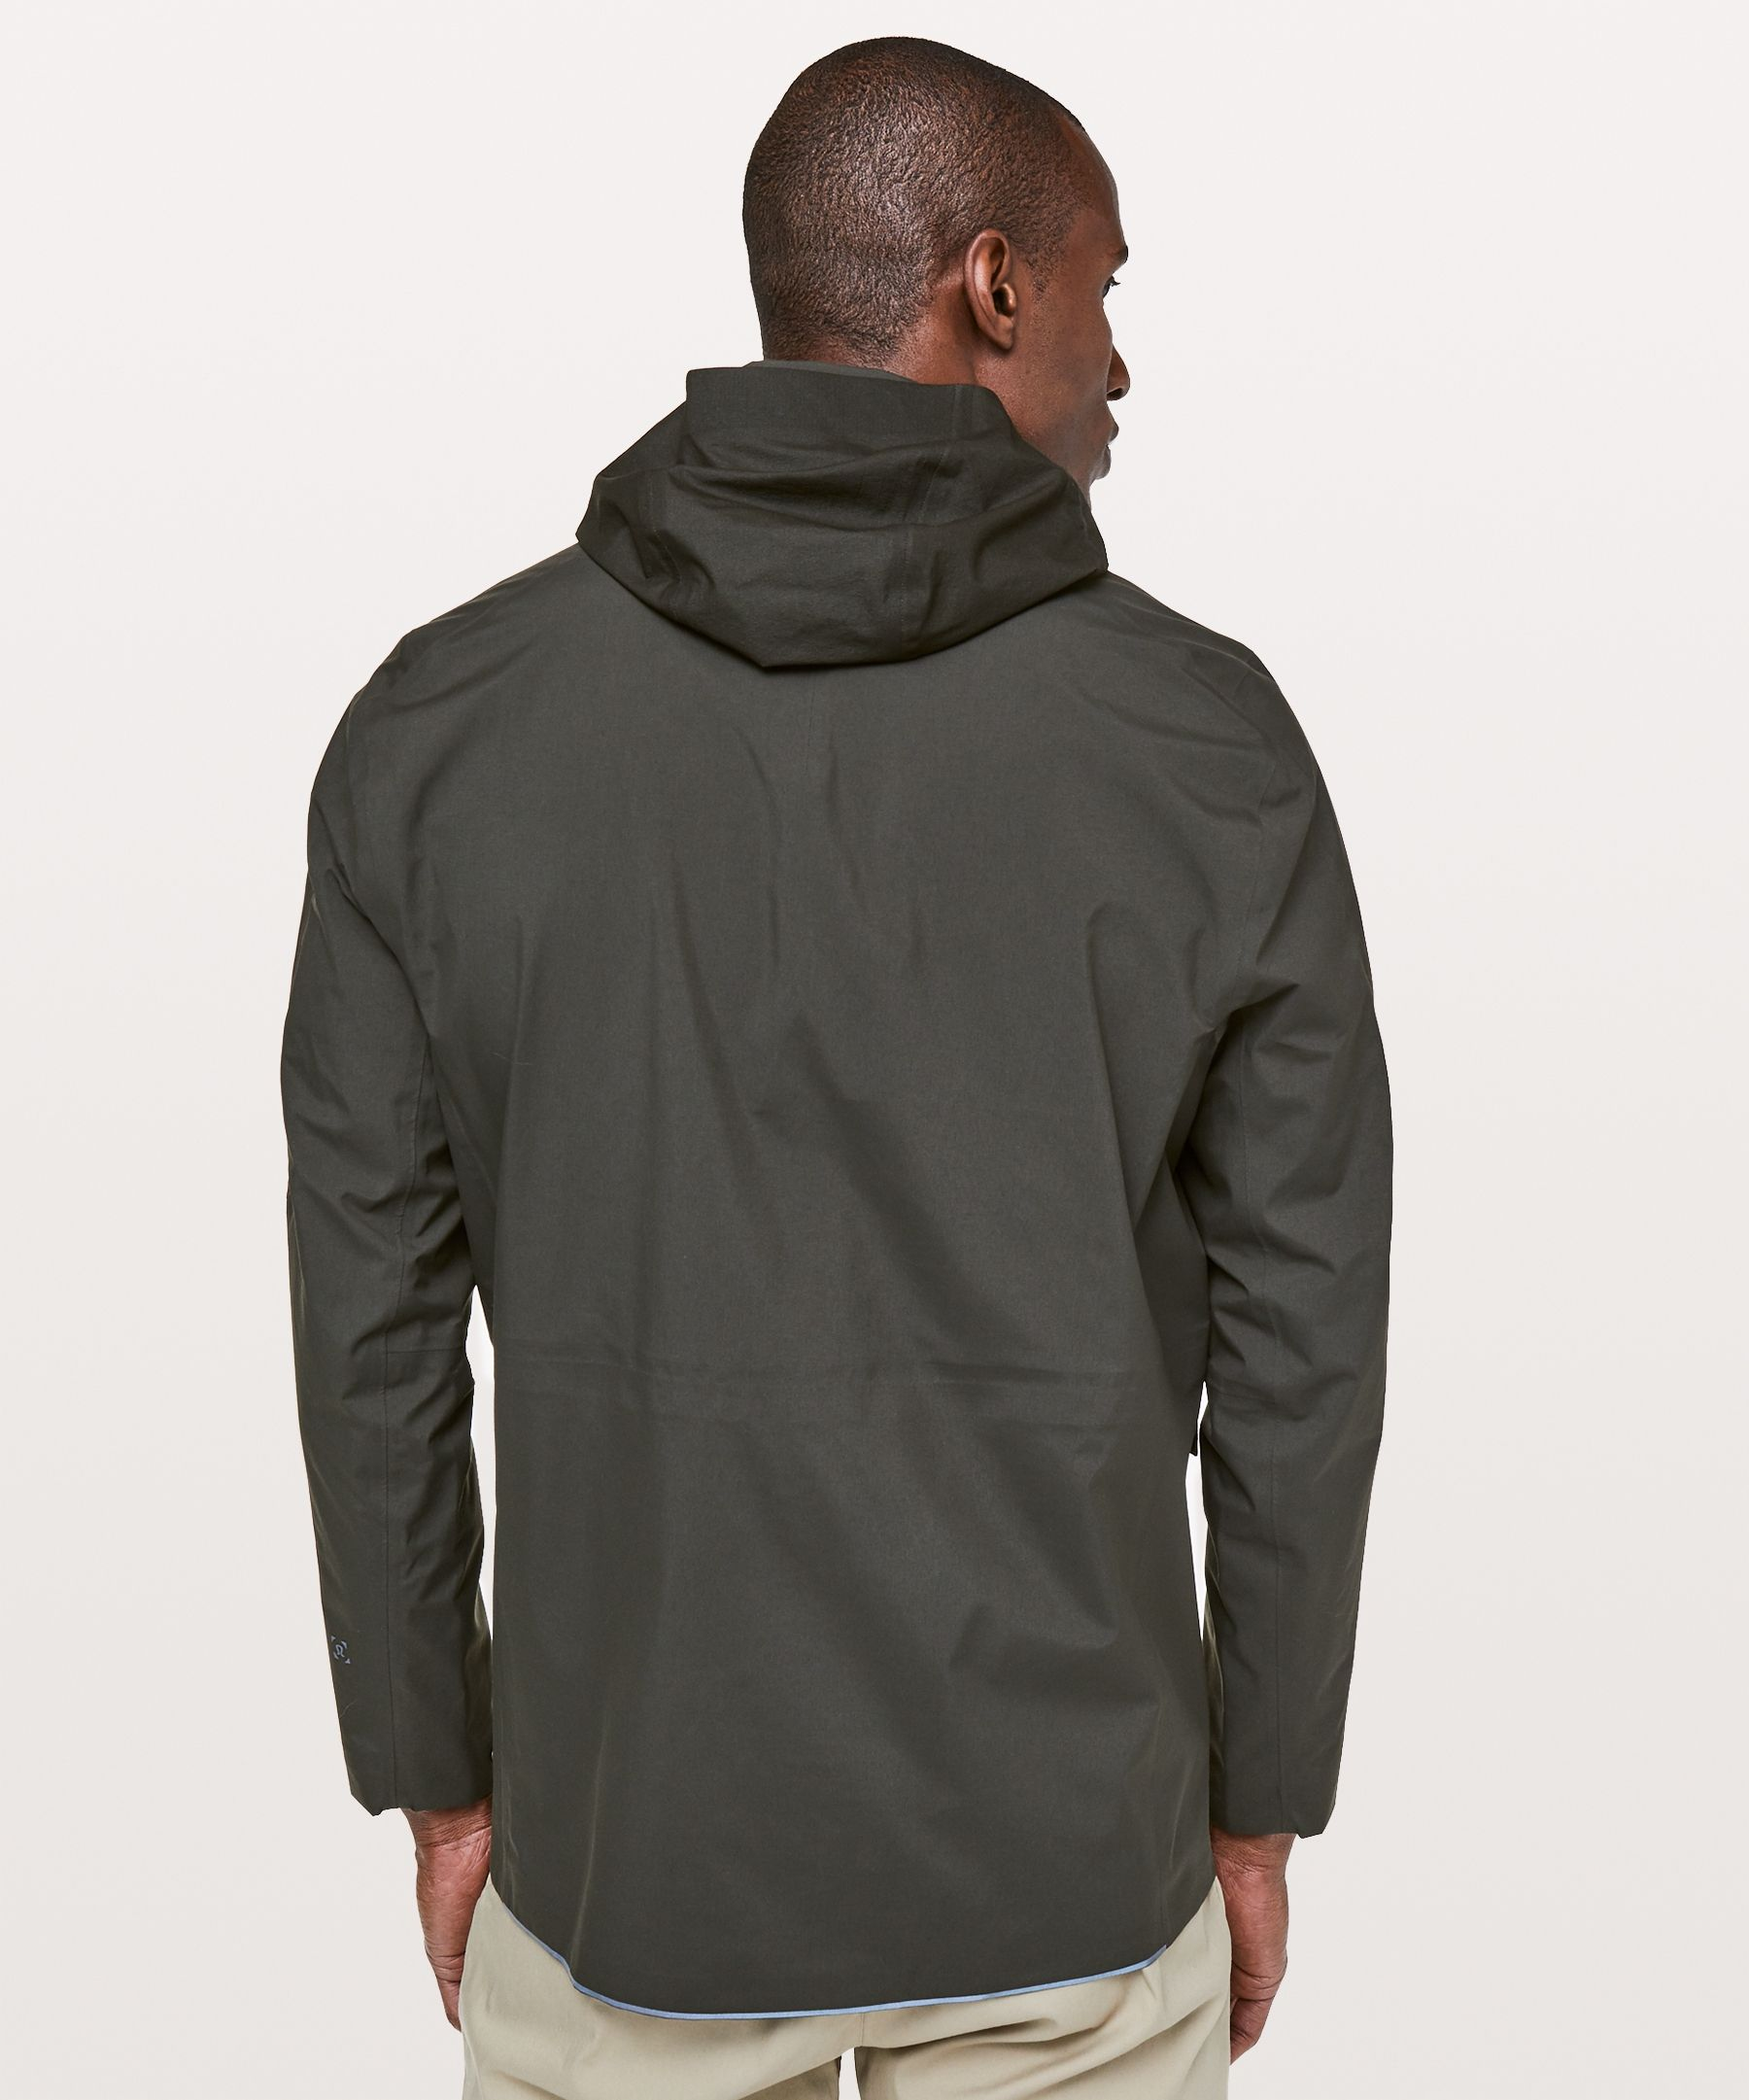 lululemon Men's Storm Field Jacket, Dark Olive, Size M 9